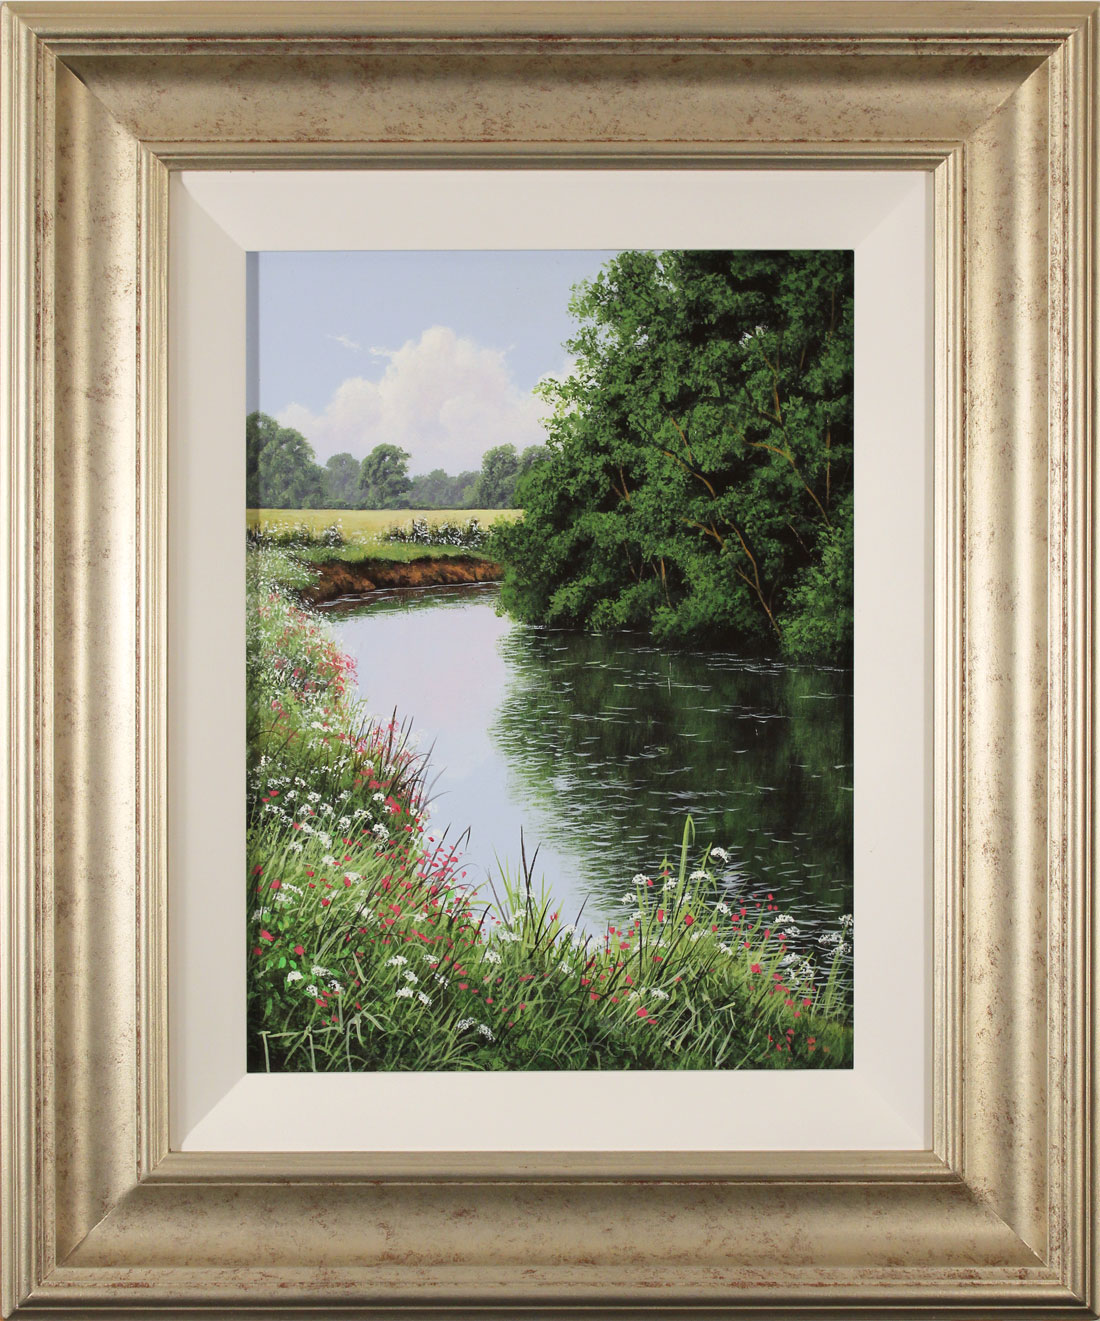 Terry Grundy, Original oil painting on panel, The River Eden Click to enlarge